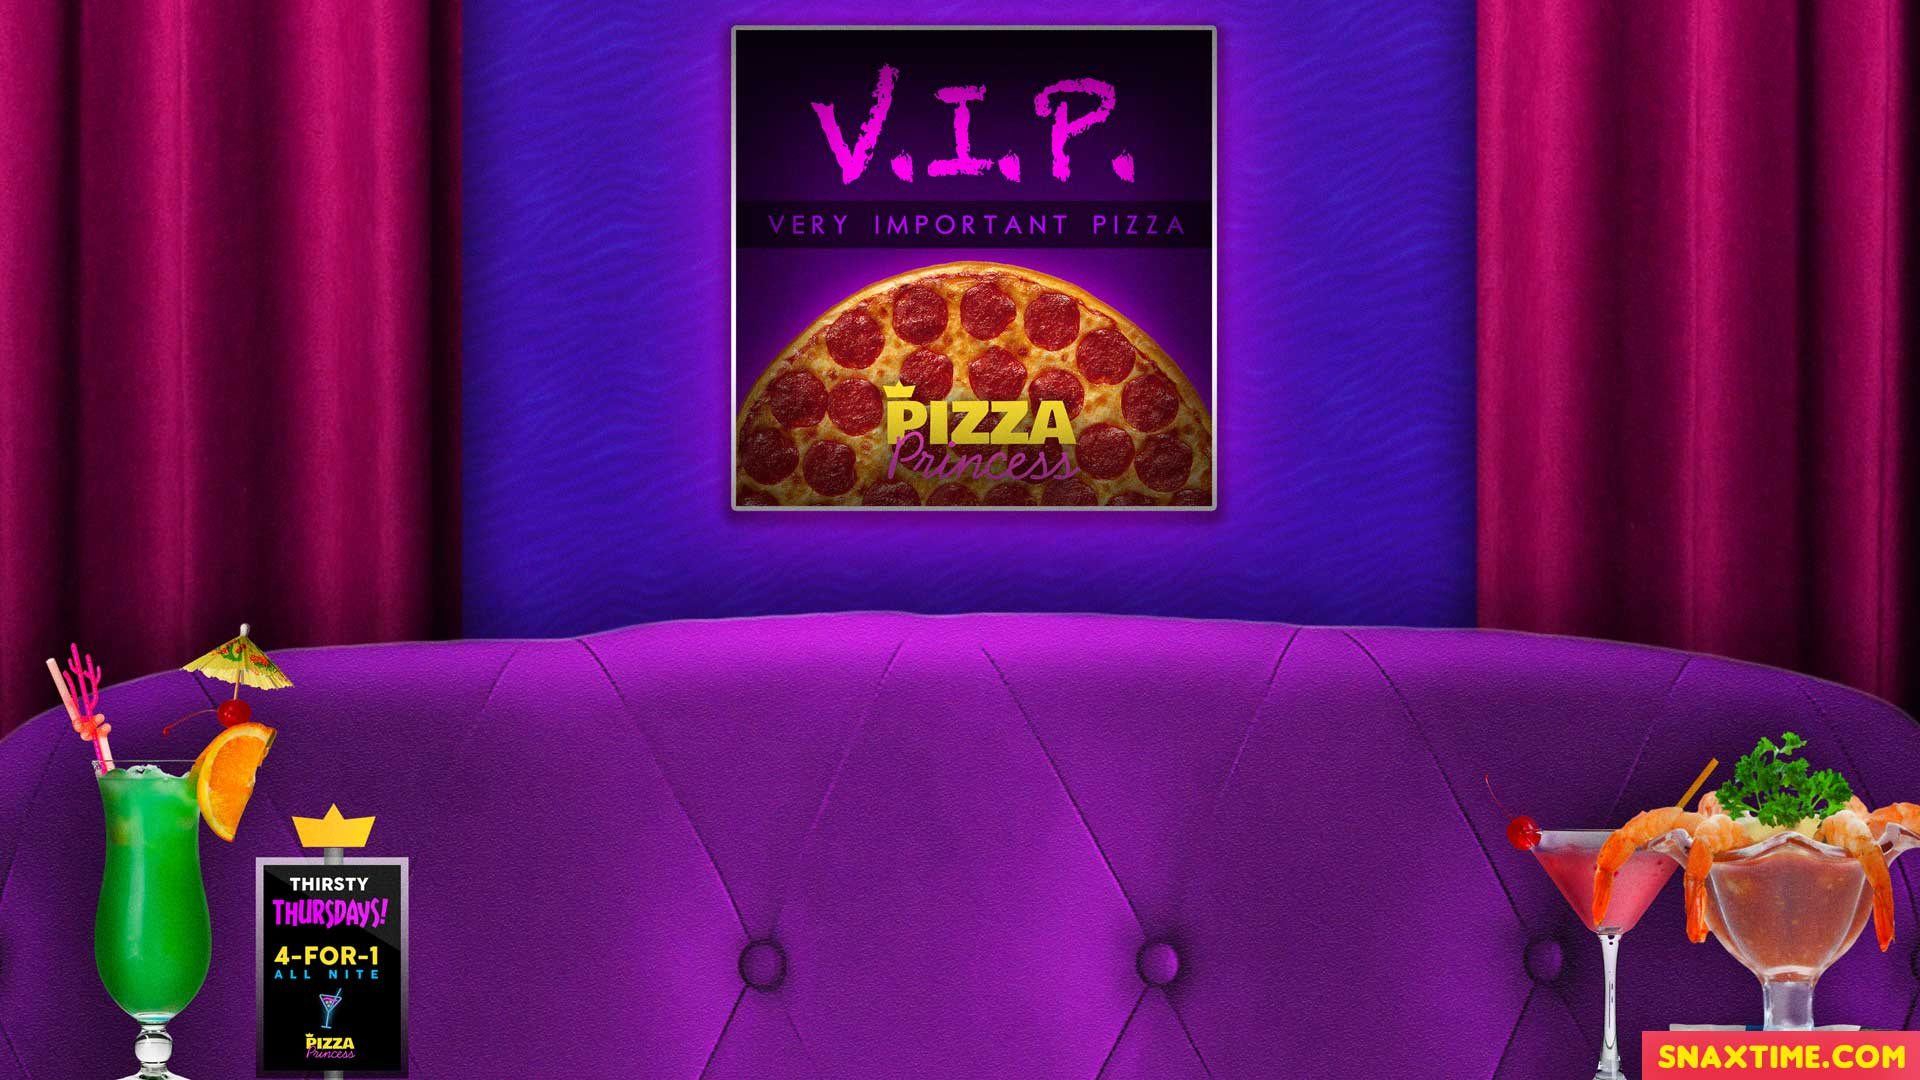 Free Zoom Background - Pizza Restaurant VIP Cocktails with Shrimp